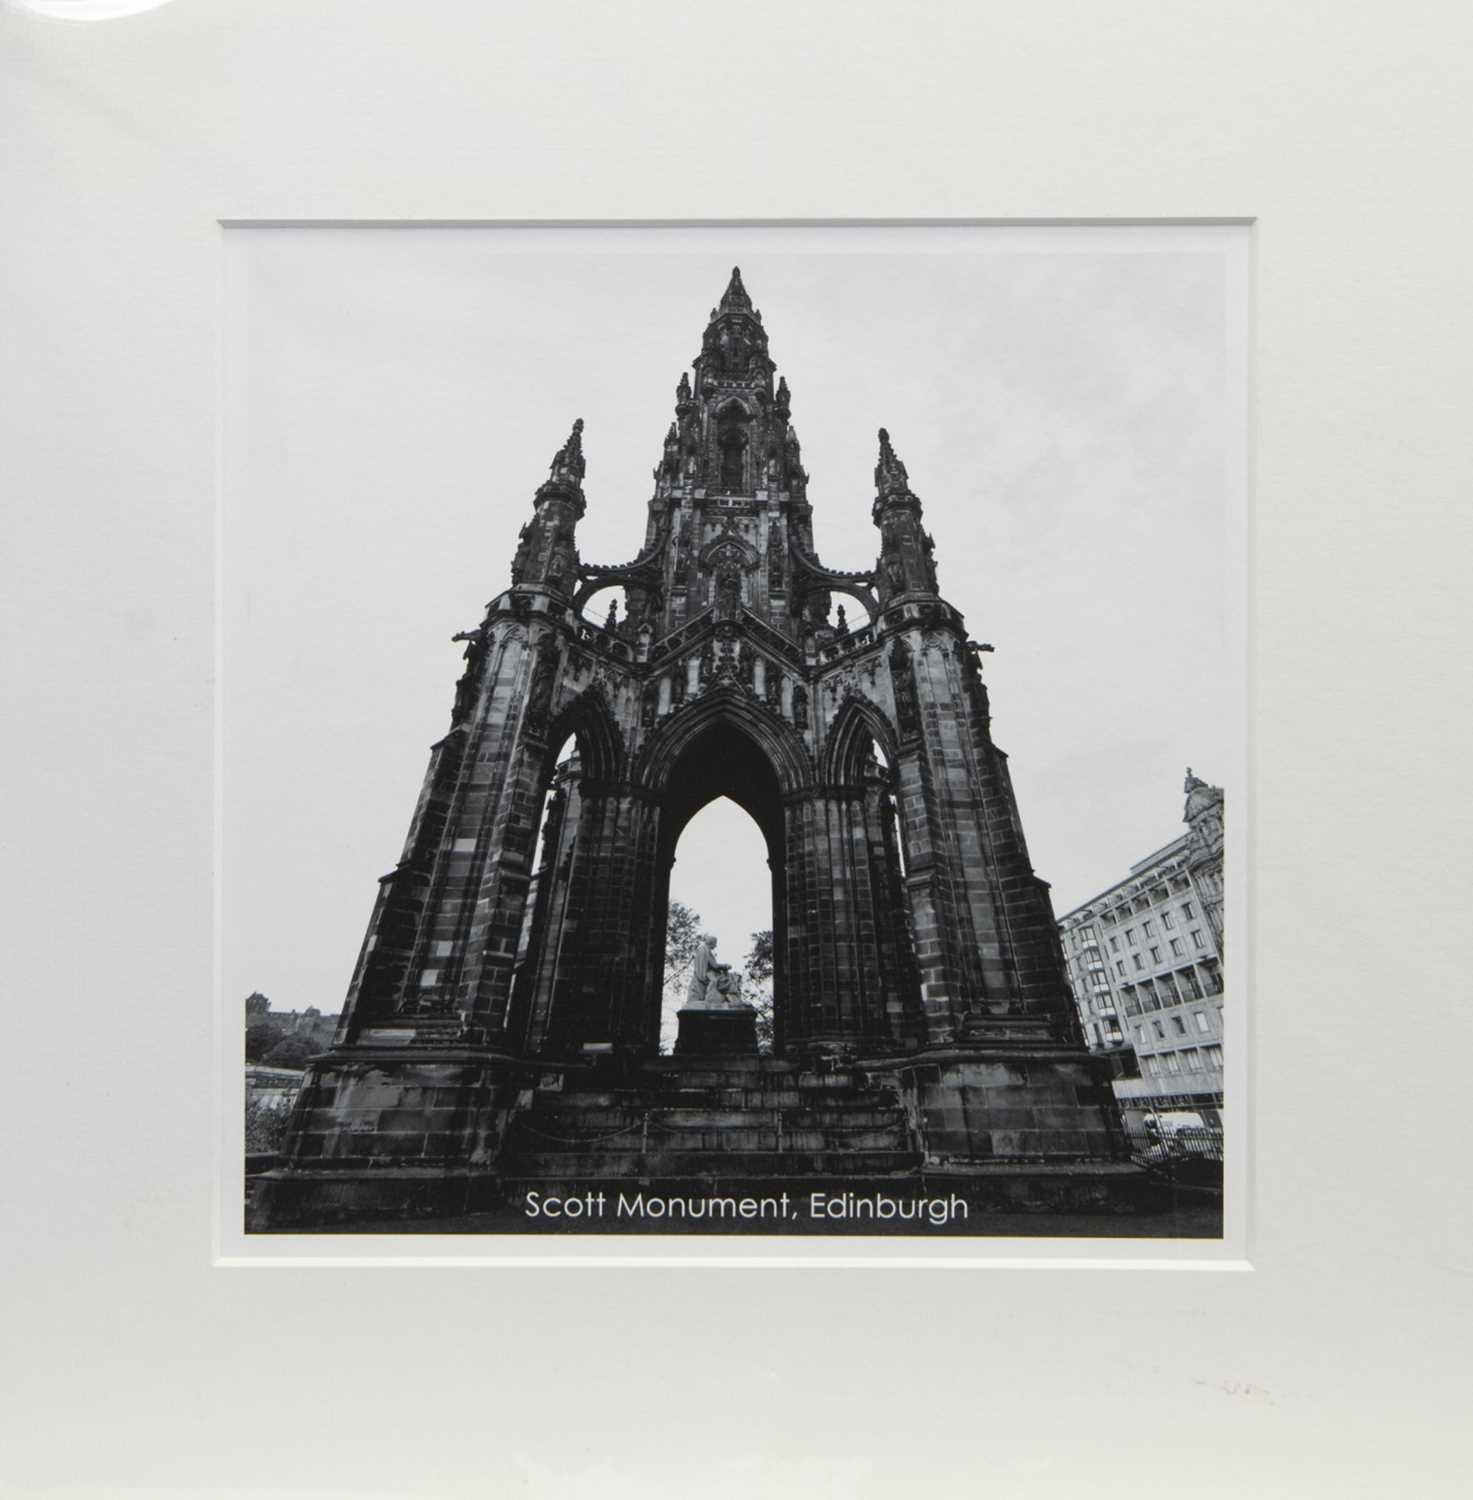 Lot 130 - SCOTT MONUMENT, A PHOTOGRAPH BY GREGG M ERICKSON